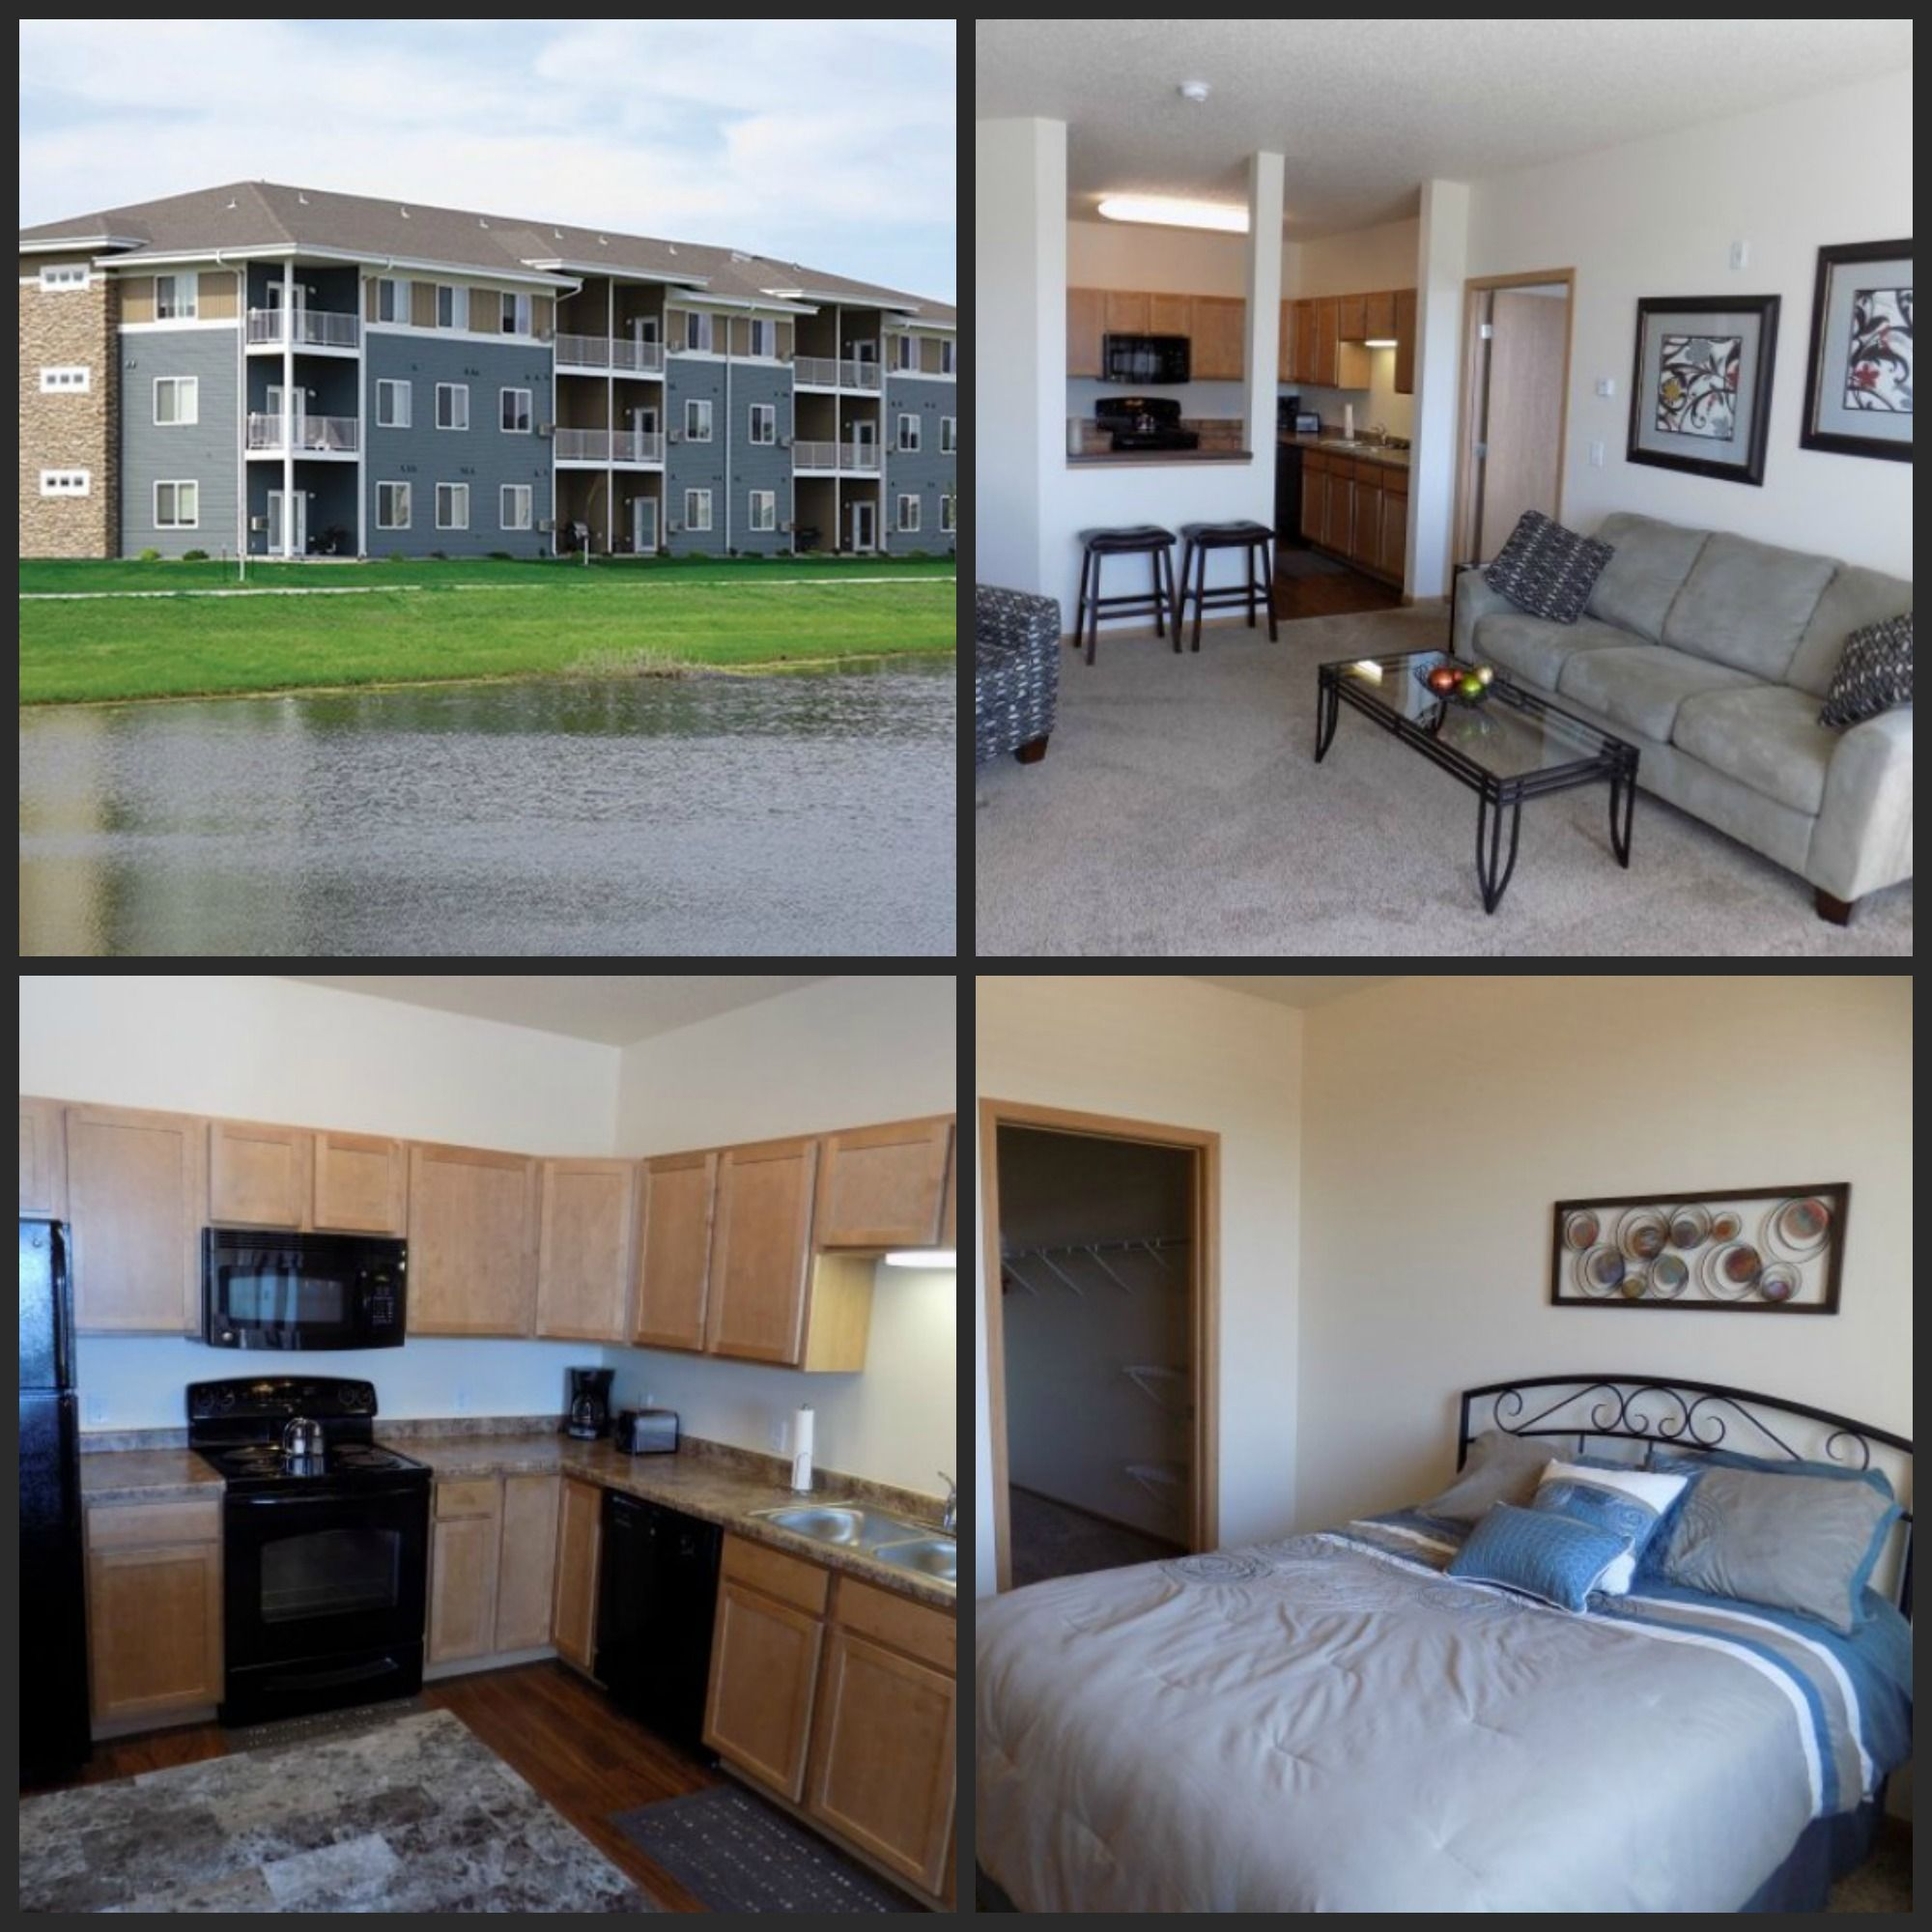 Brandt Place Apartment Homes In Fargo Nd 701 205 1019 2 Bedrooms 900 1025 1 Bedrooms 745 Bedroom Apartment 1 Bedroom Apartment 2 Bedroom Apartment